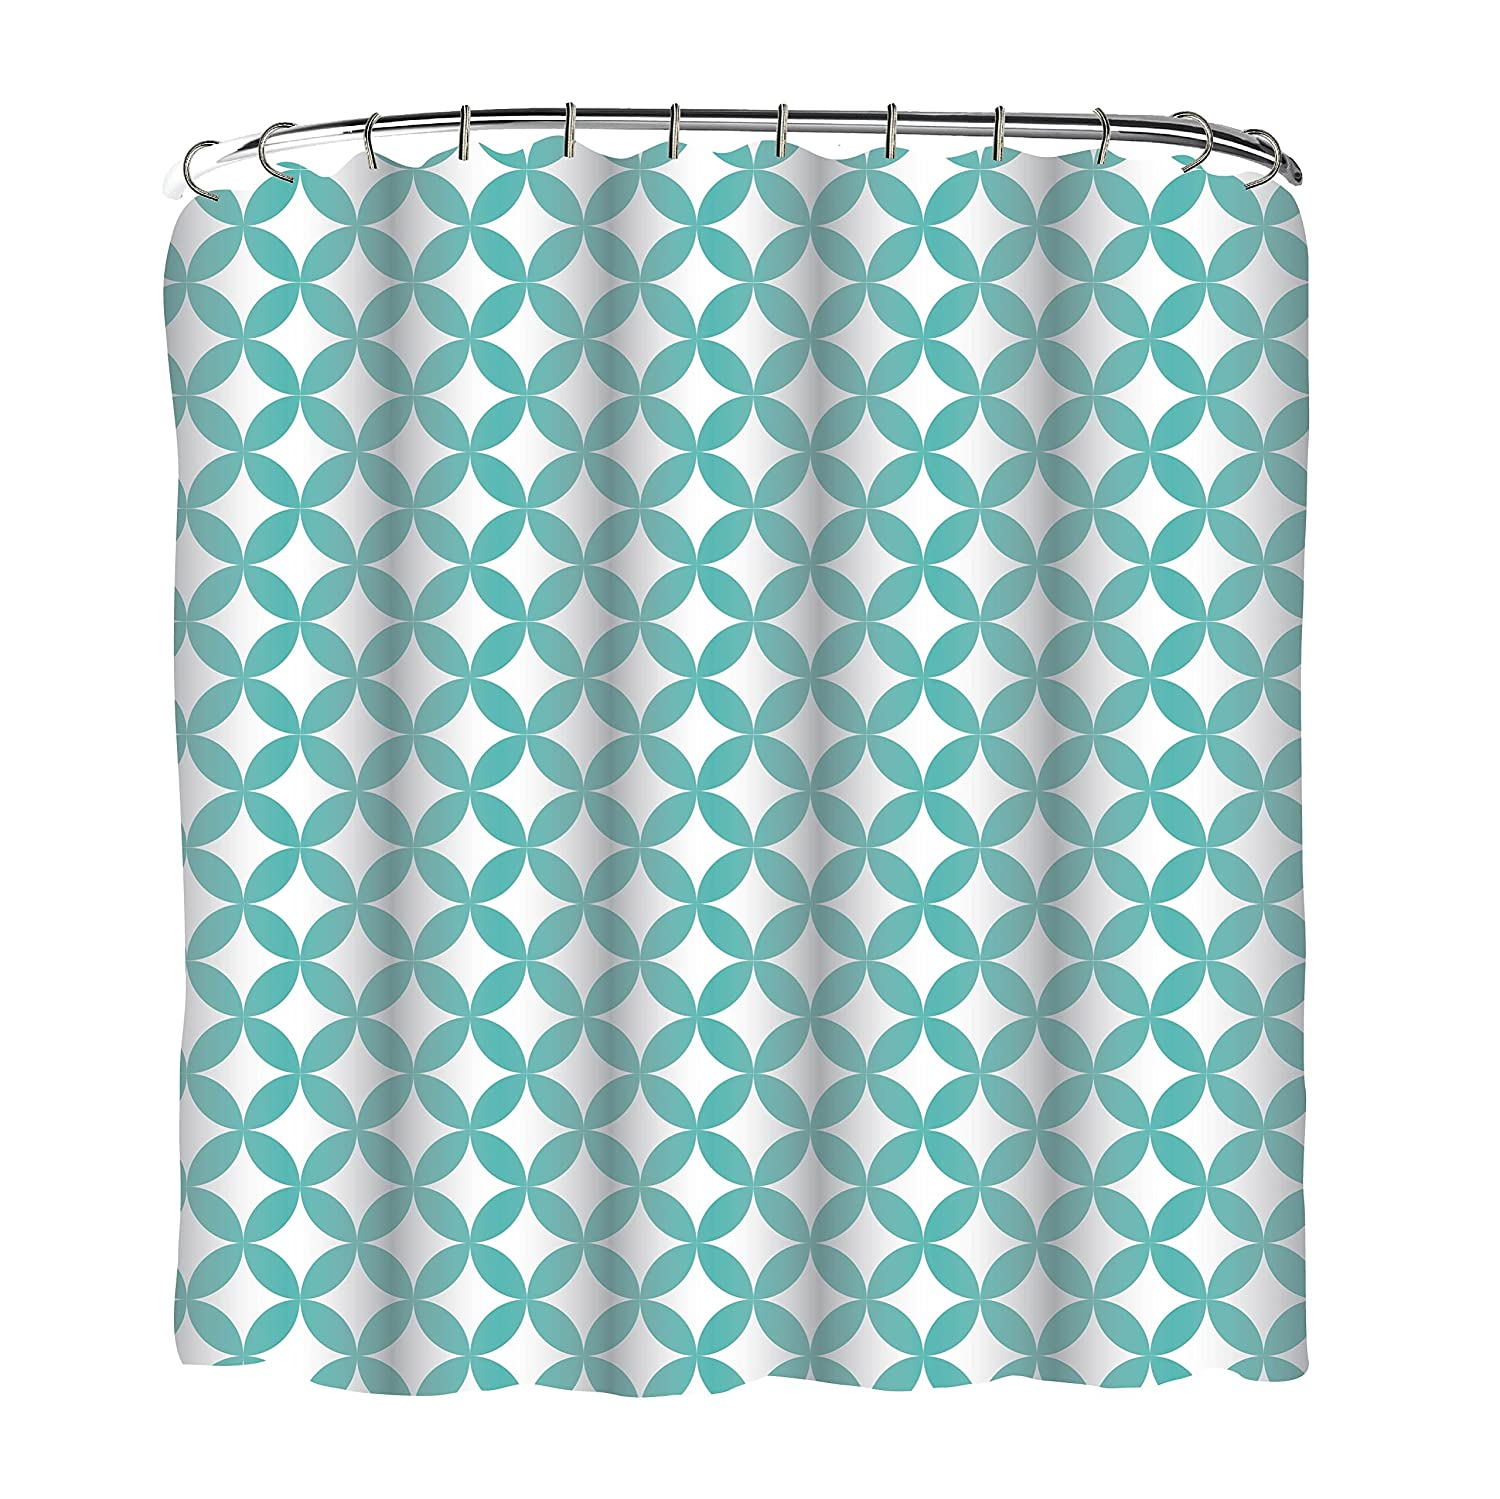 Blue ruffled shower curtains - Amazon Com Indecor Home Fscrh Rdiamond Bl Fabric Reverse Diamond Shower Curtain And Roller Hook Set Home Kitchen